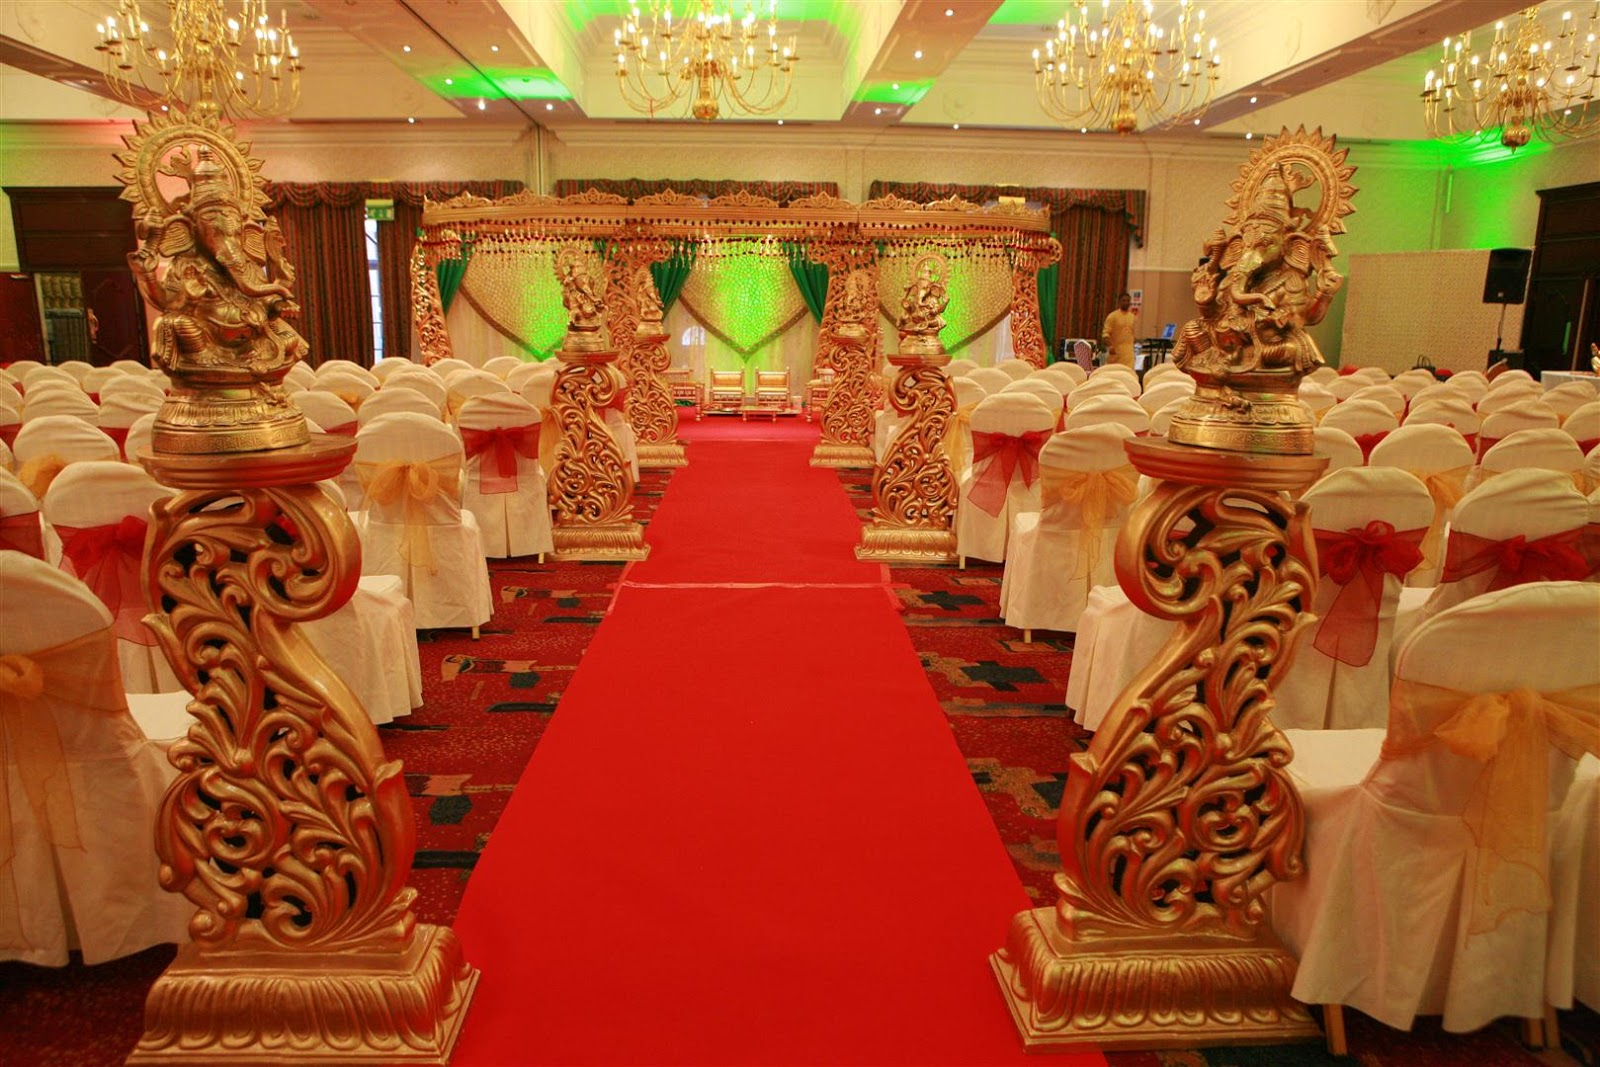 Mazs Blog Our favourite Asian wedding decorations in Coventry and